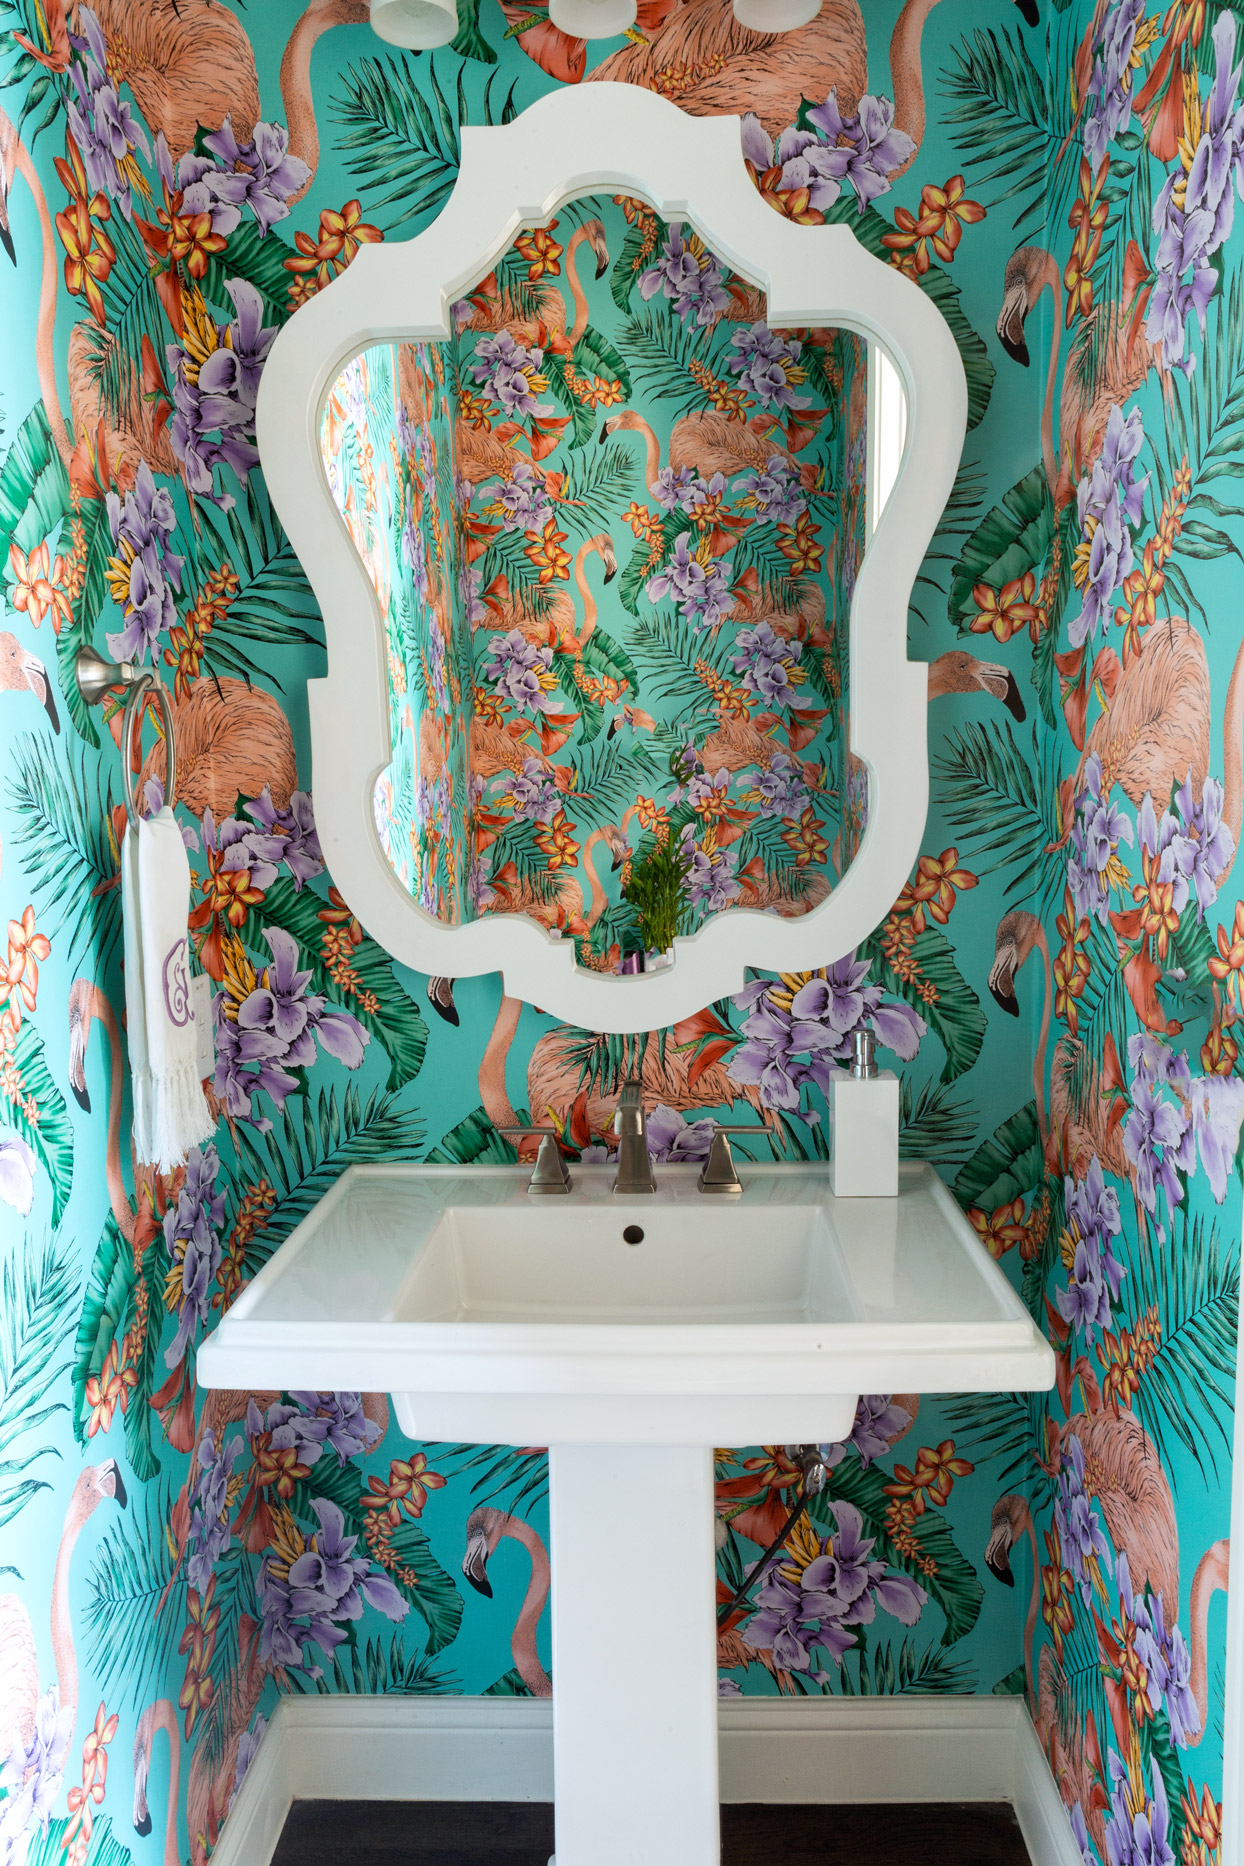 powder room with flamingo-patterned wallpaper